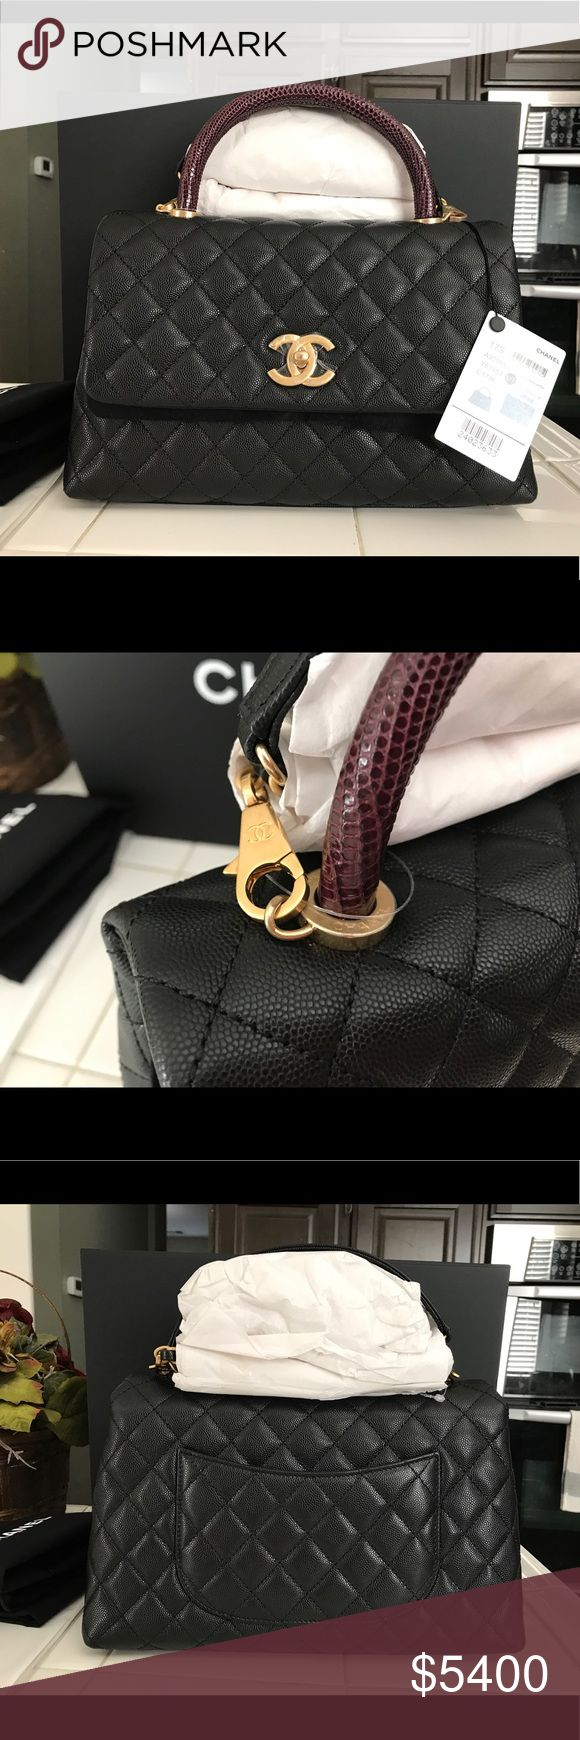 Chanel coco handle small lizard crossbody bag Brand new in box complete set with copy of receipt. CHANEL Bags Crossbody Bags